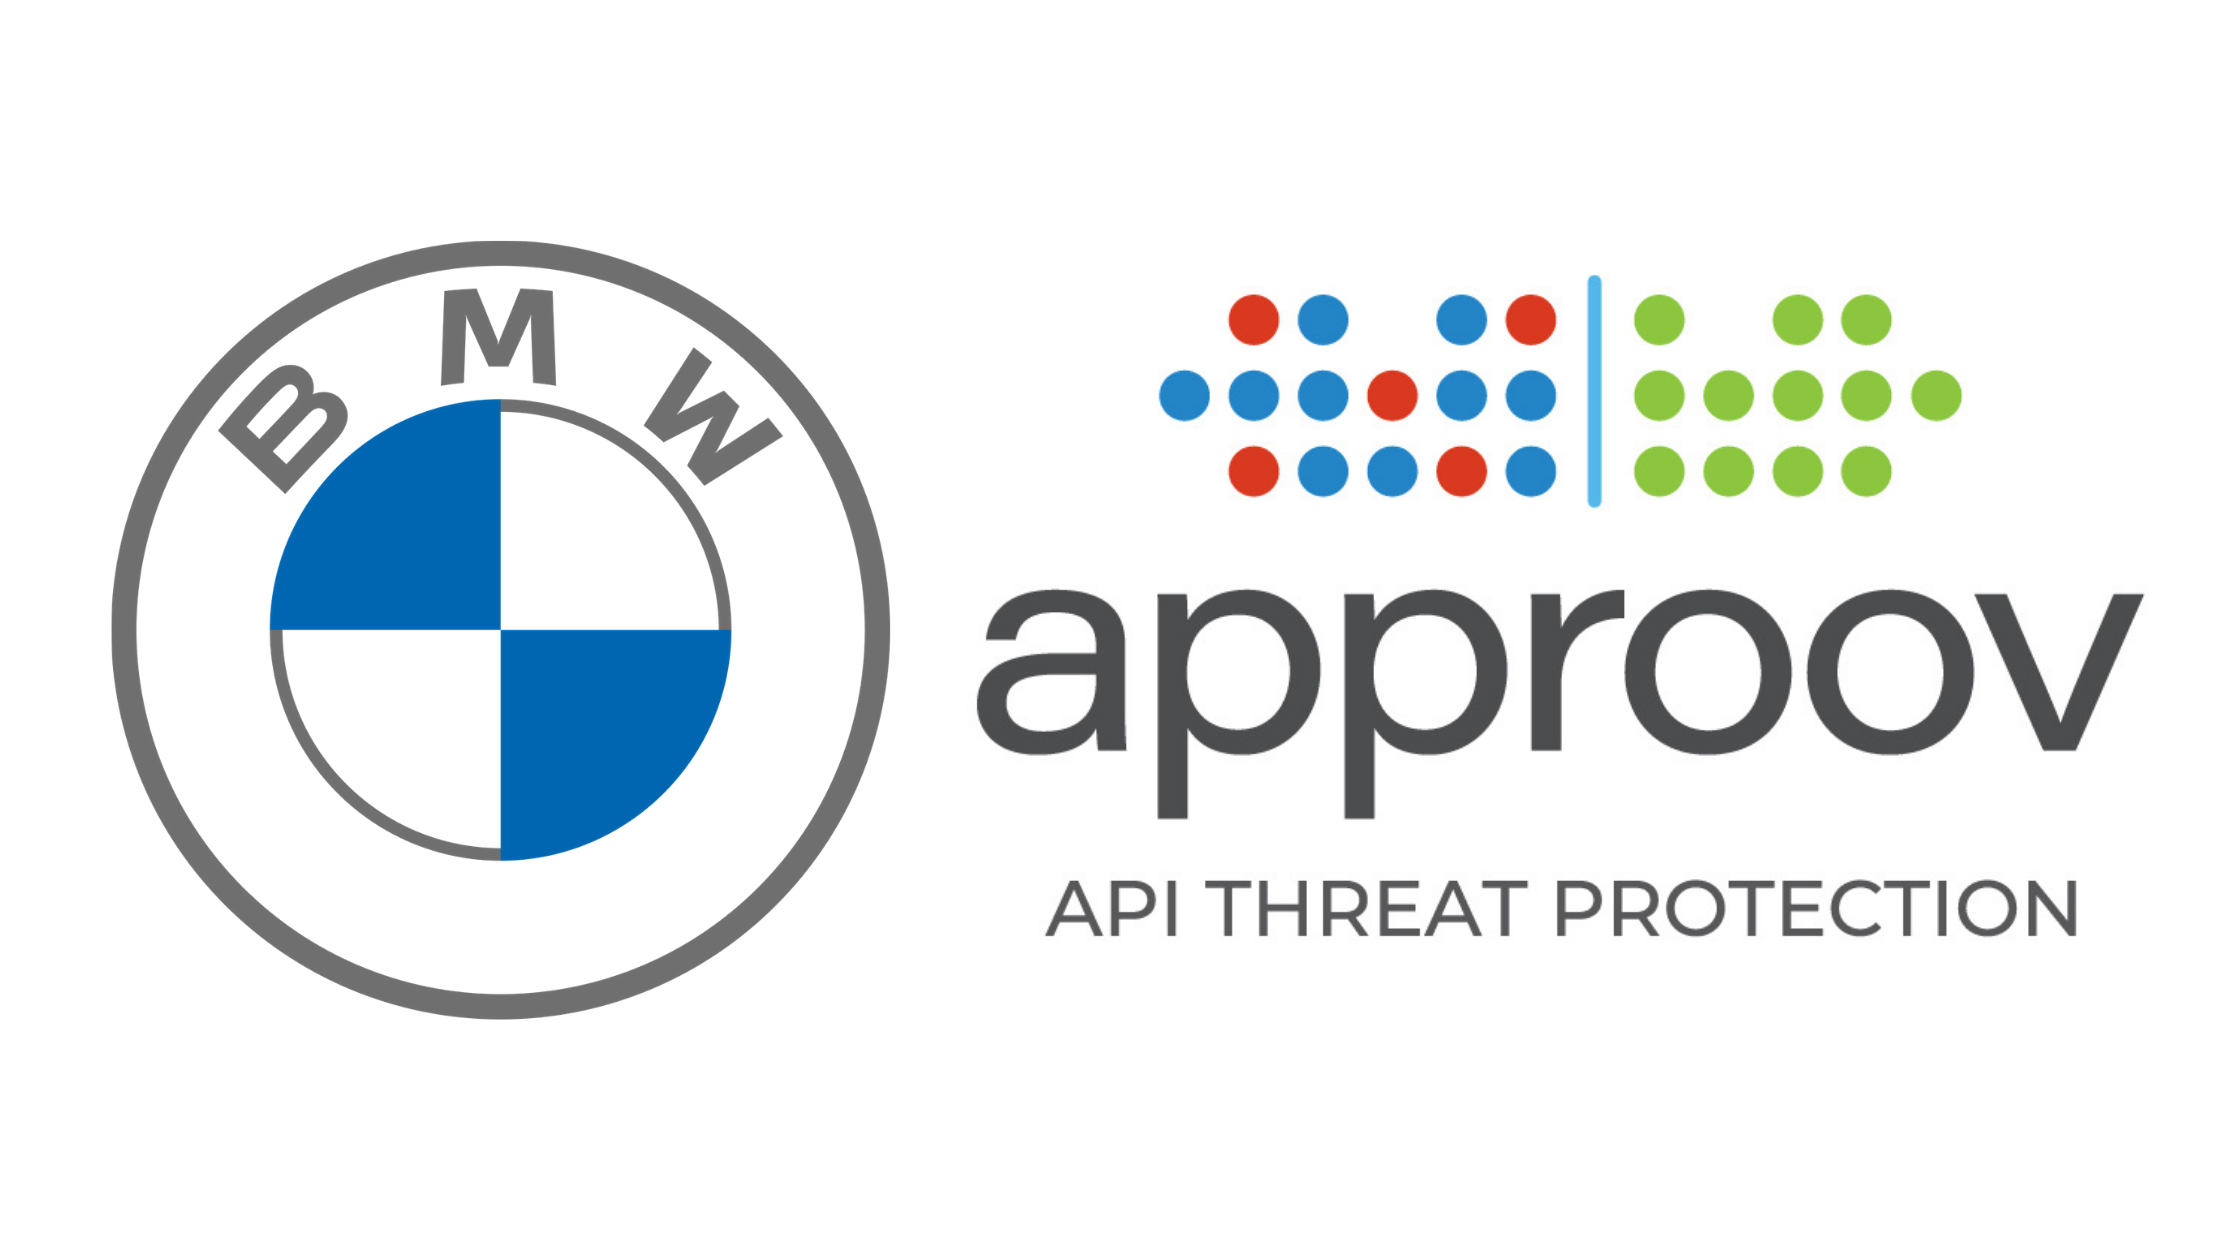 BMW  and Approov API Threat Protection logos on white background